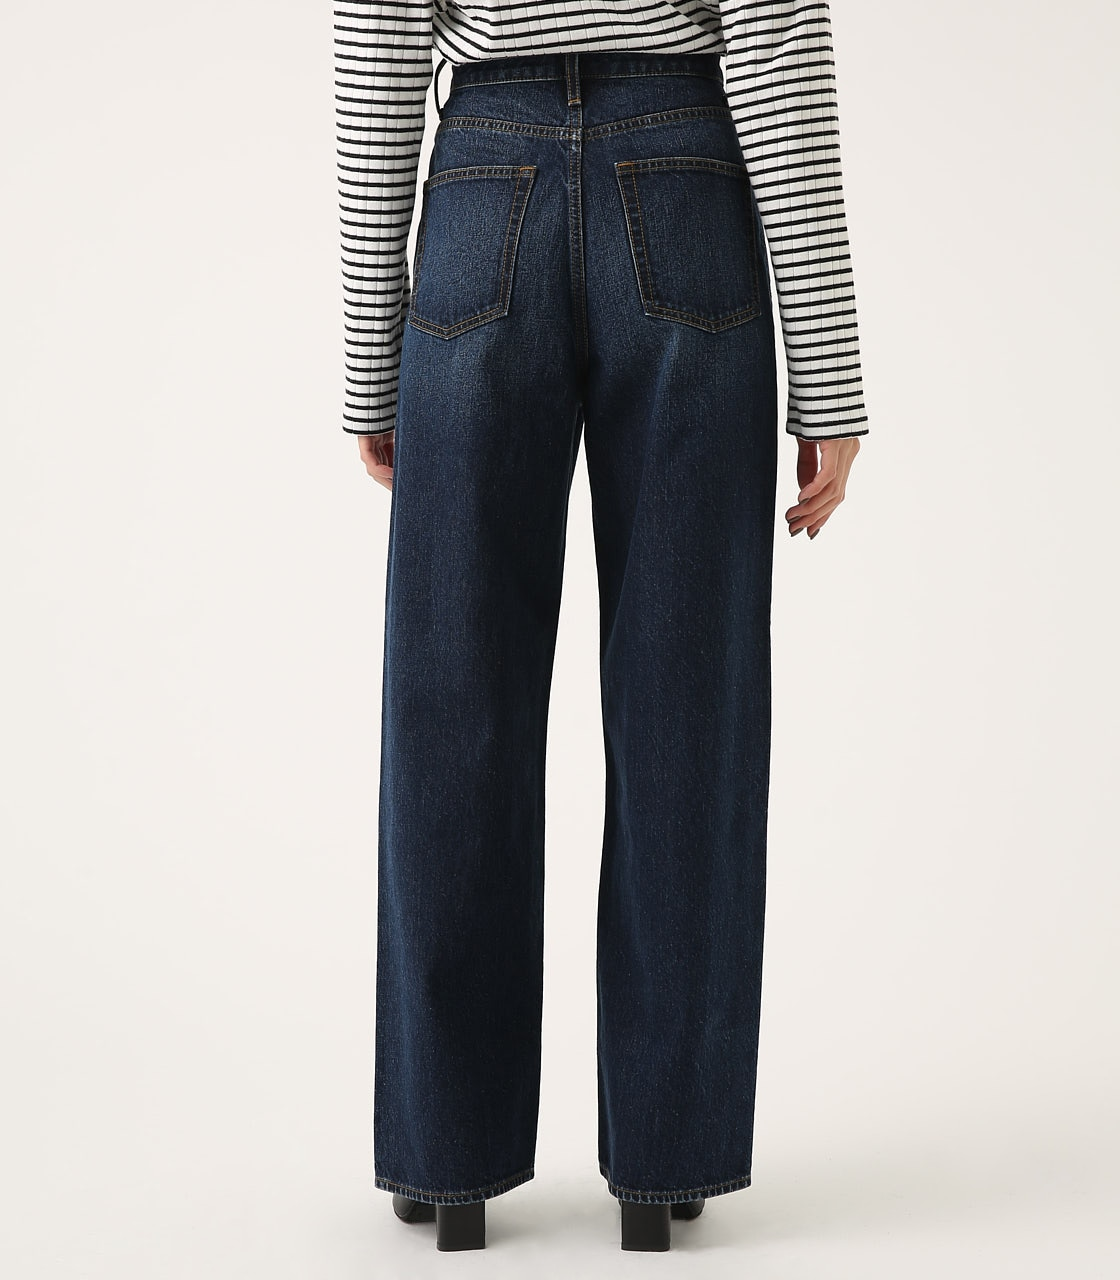 HIGH WAIST DENIM WIDE 詳細画像 D/BLU 7